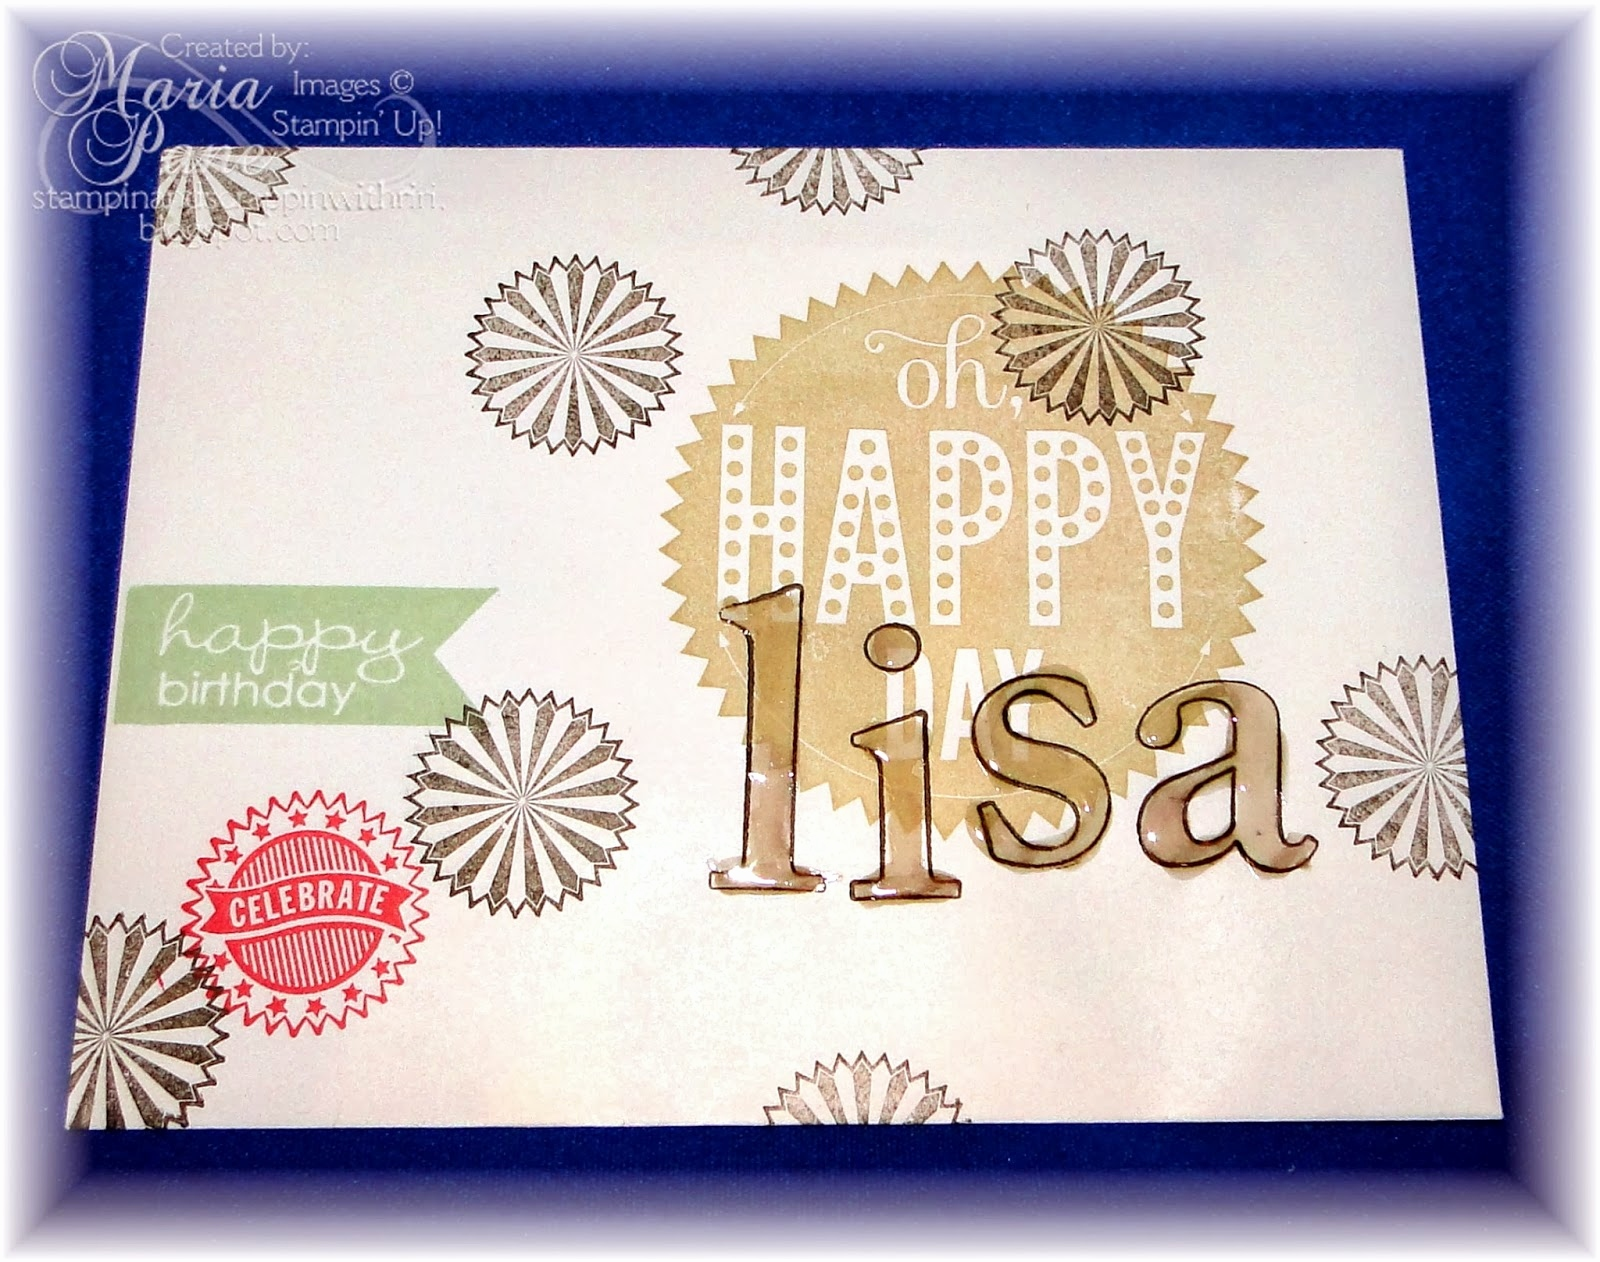 happy birthday month card ; happy-1-month-birthday-card-inspirational-stampin-and-scrappin-with-ri-ri-happy-birthday-lisa-chatterjee-of-happy-1-month-birthday-card